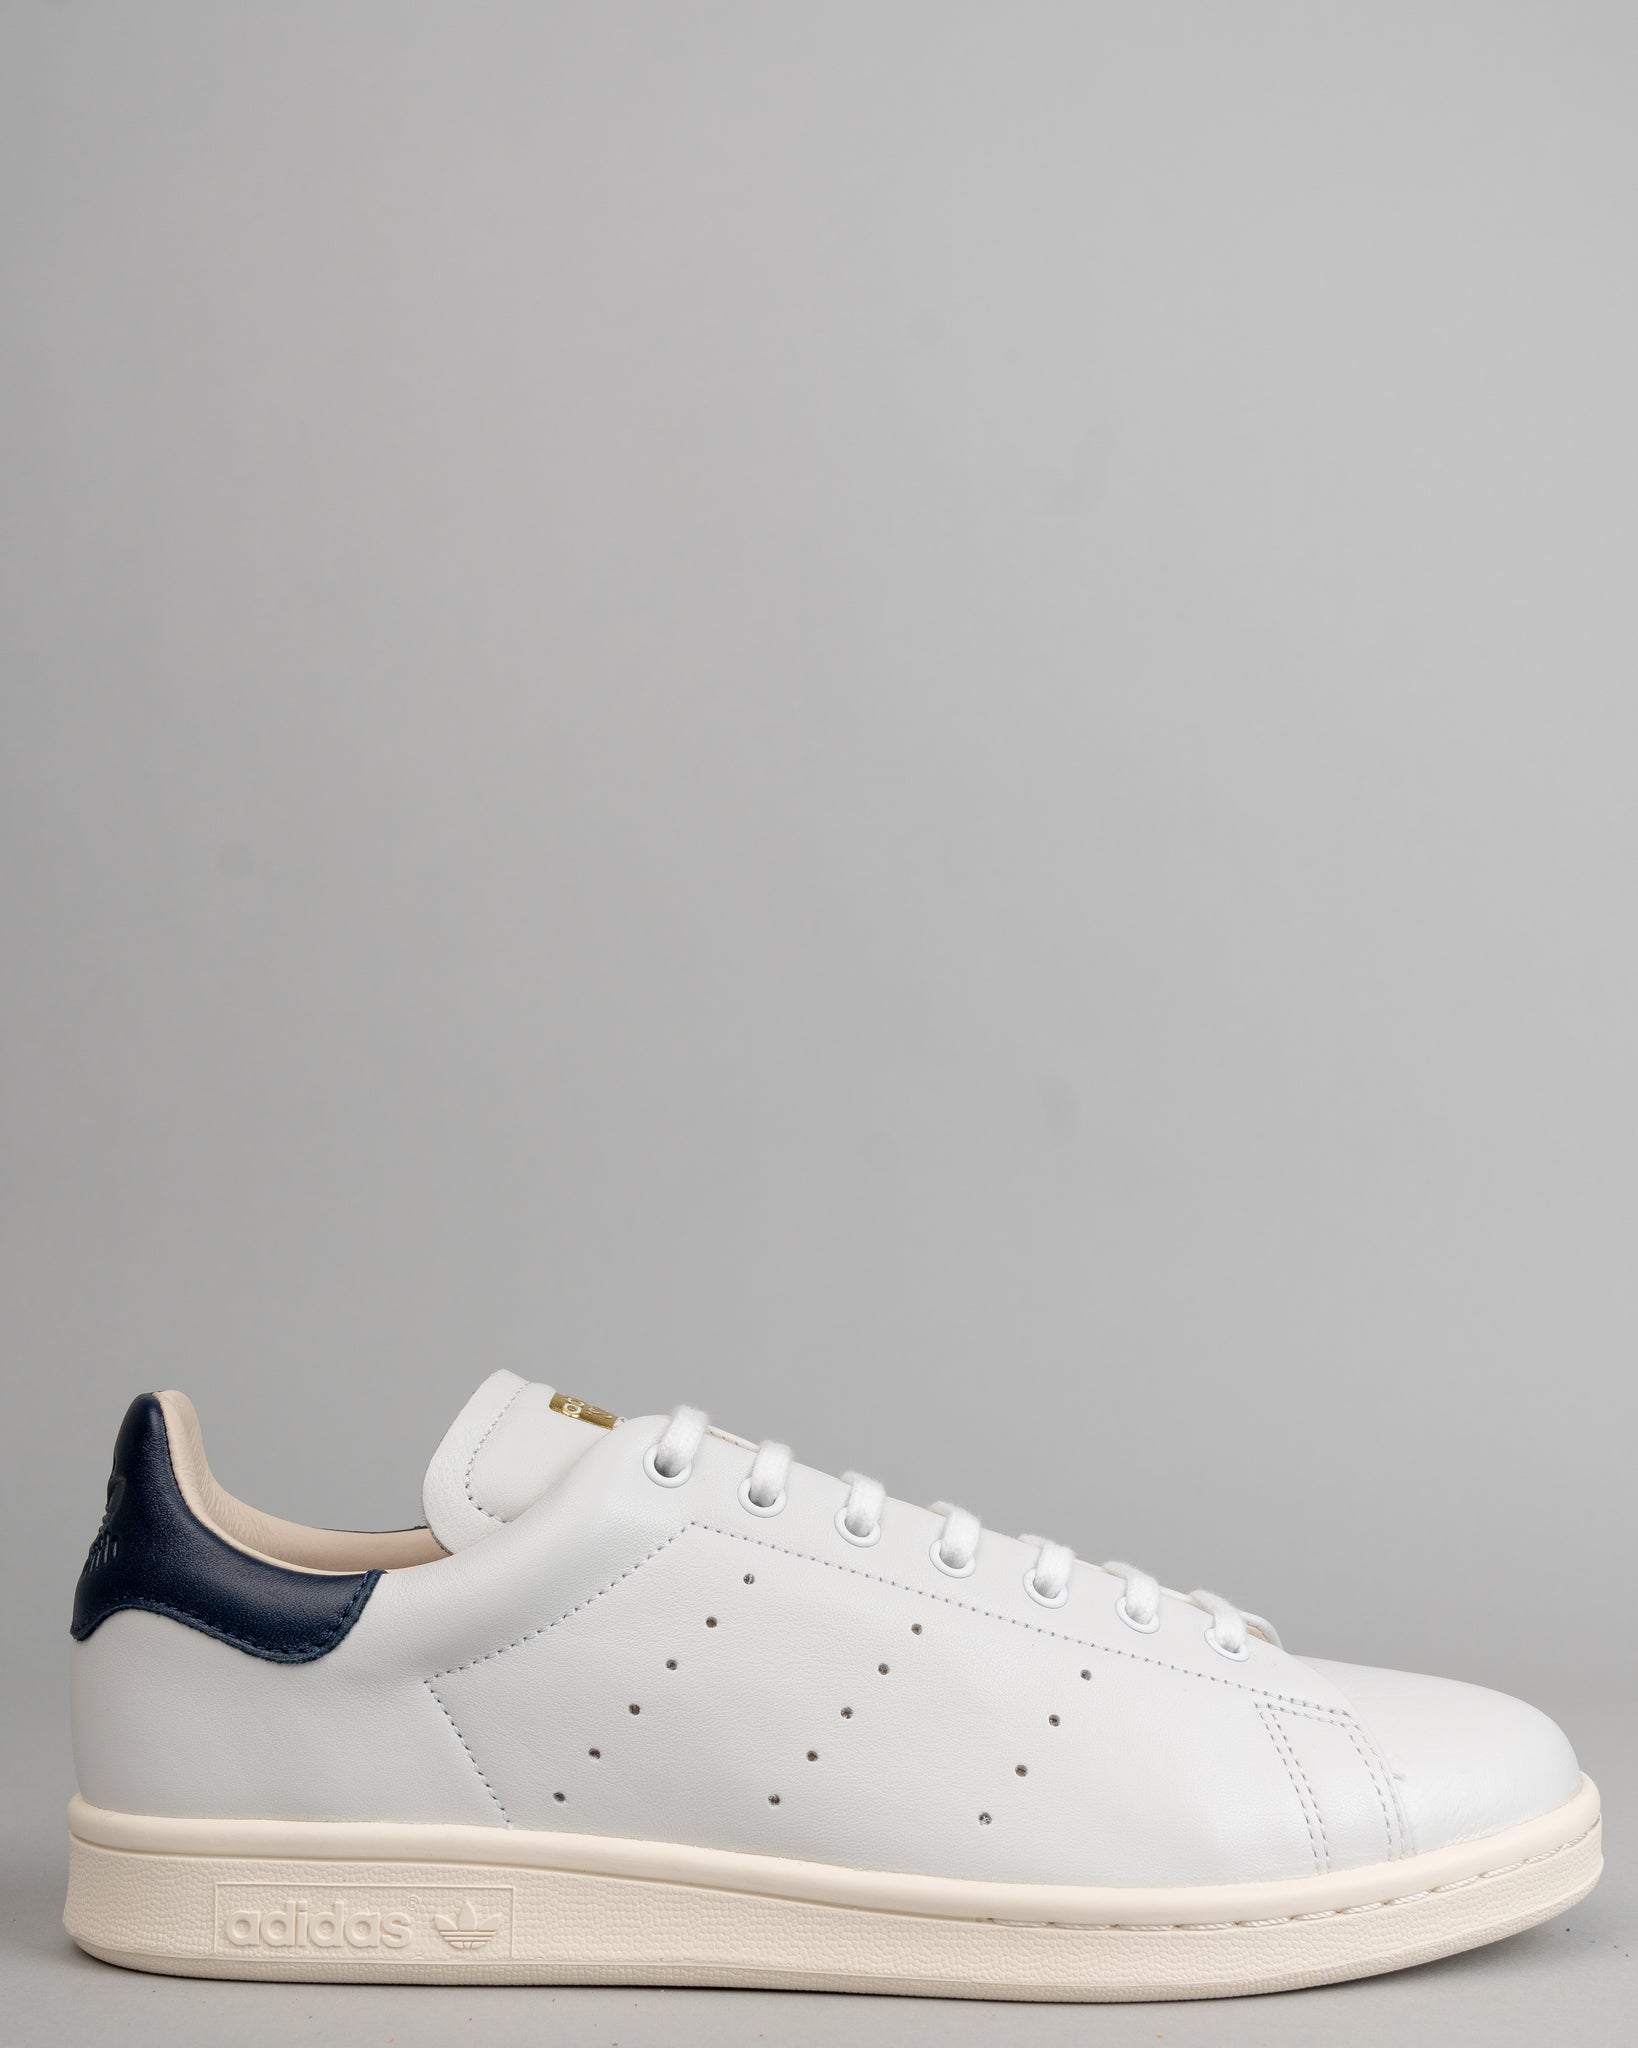 Stan Smith Recon White/White/Collegiate Navy